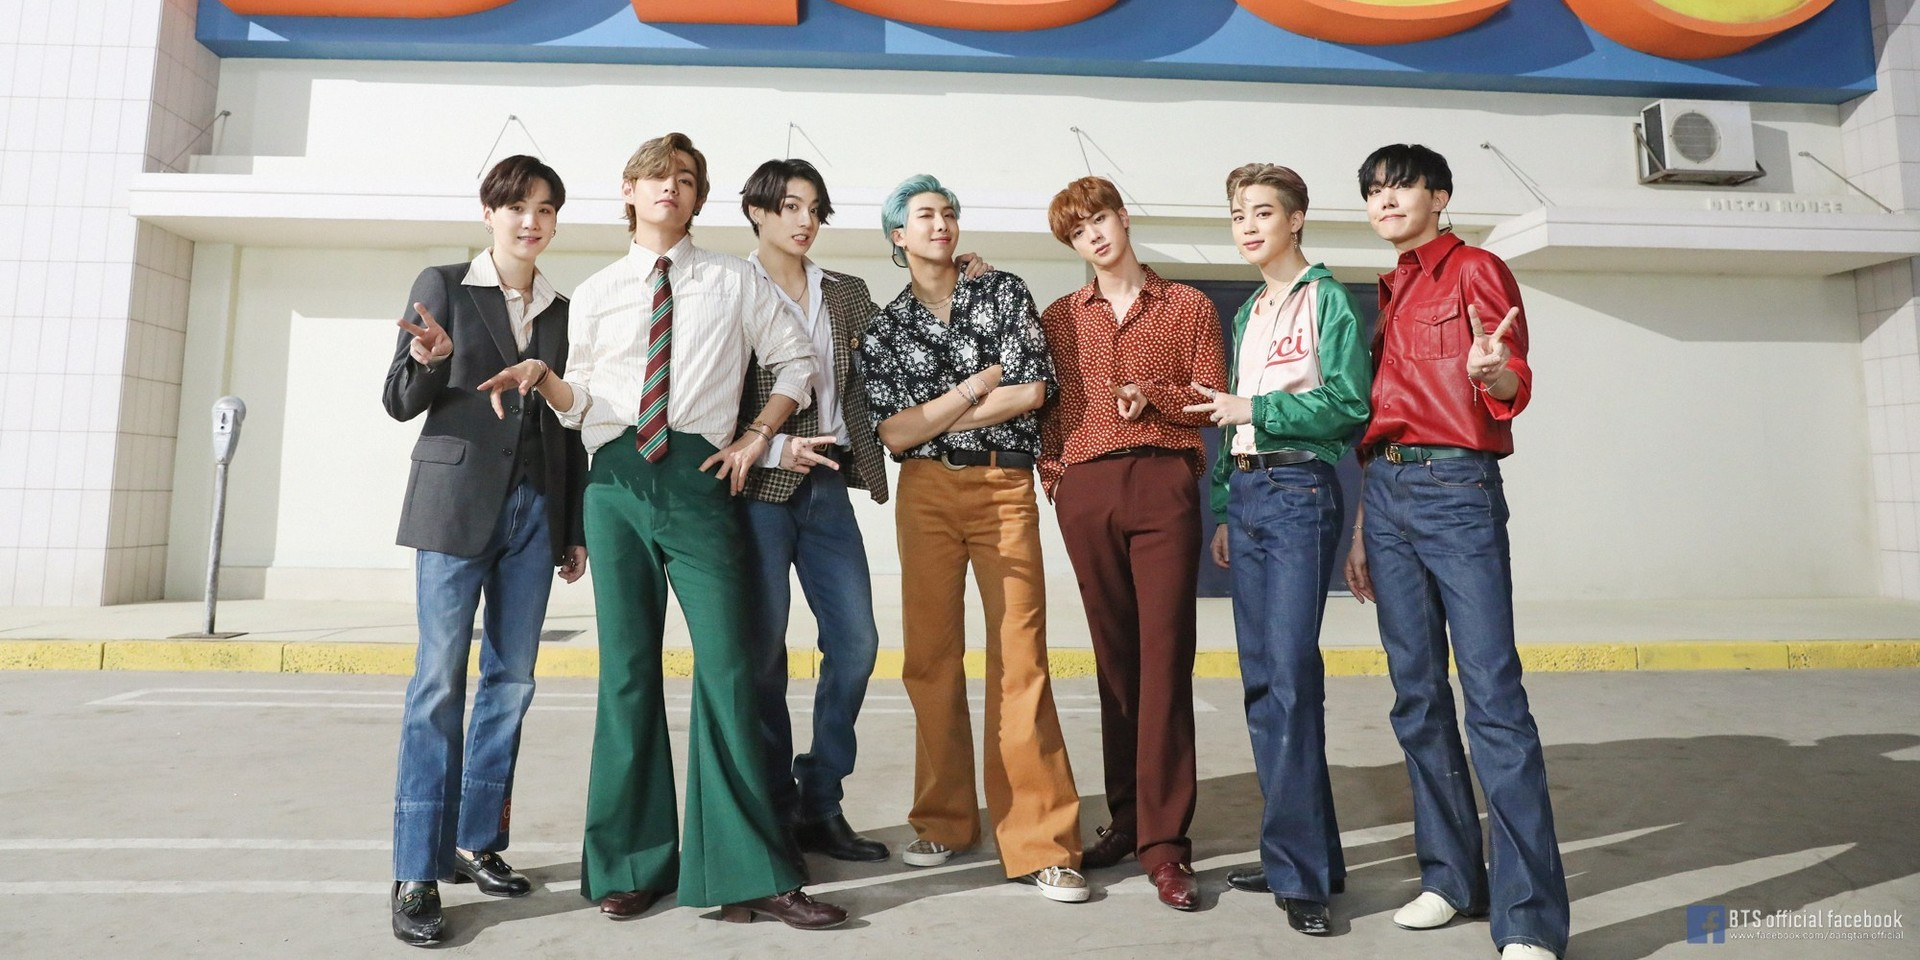 A BTS fan takes us through the K-pop superstars' fashion with Bangtan Style Twitter account